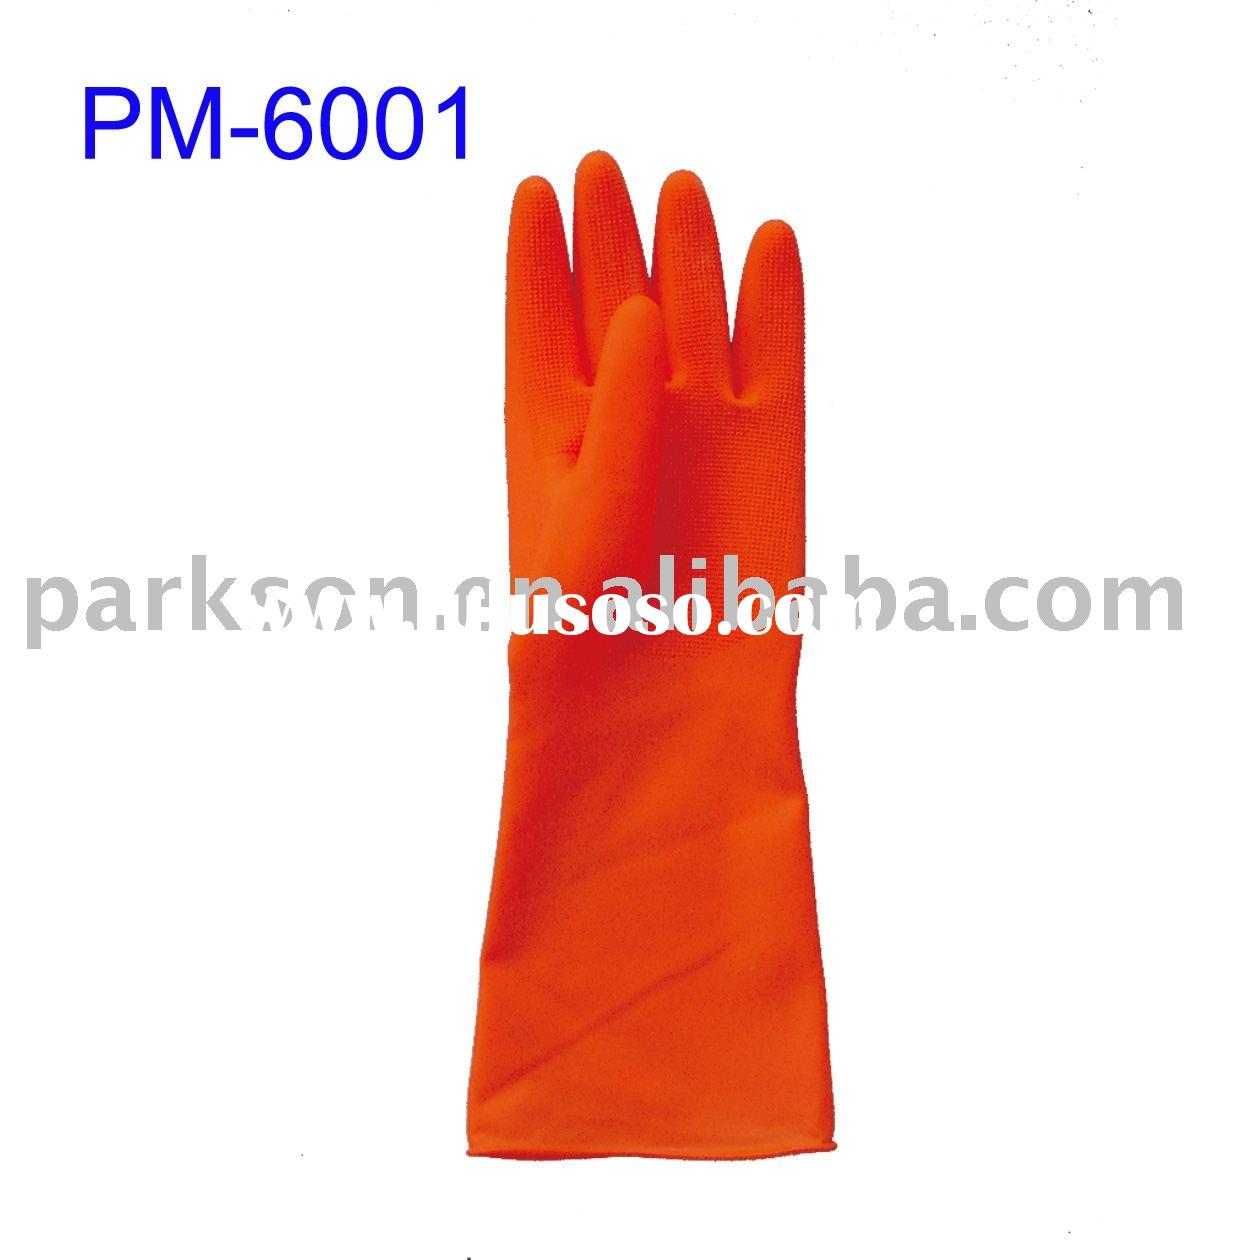 Rubber Glove , Industrial Glove , Safety Glove